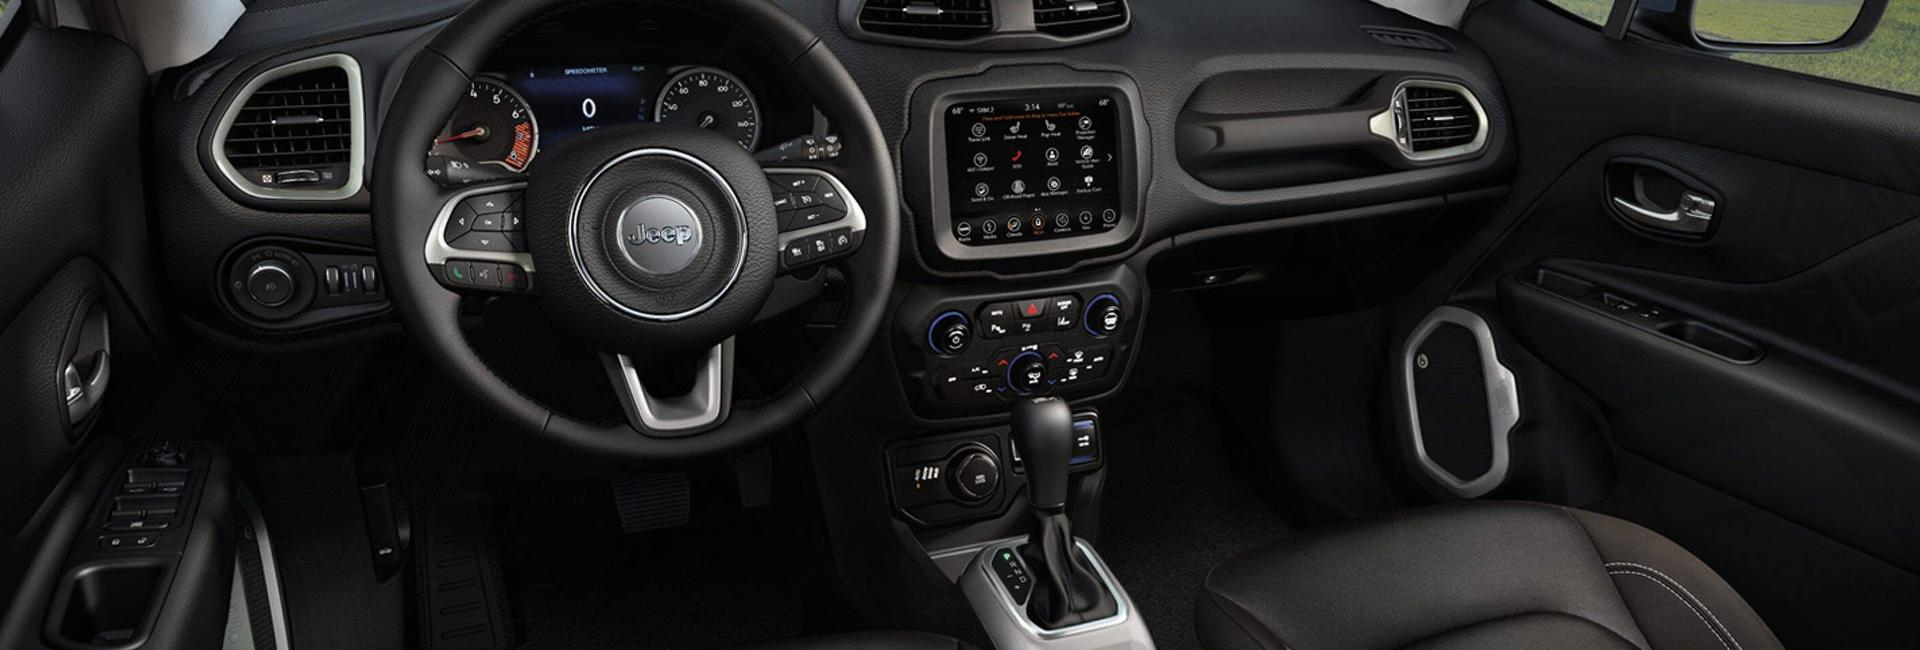 Interior view of the 2020 Renegade